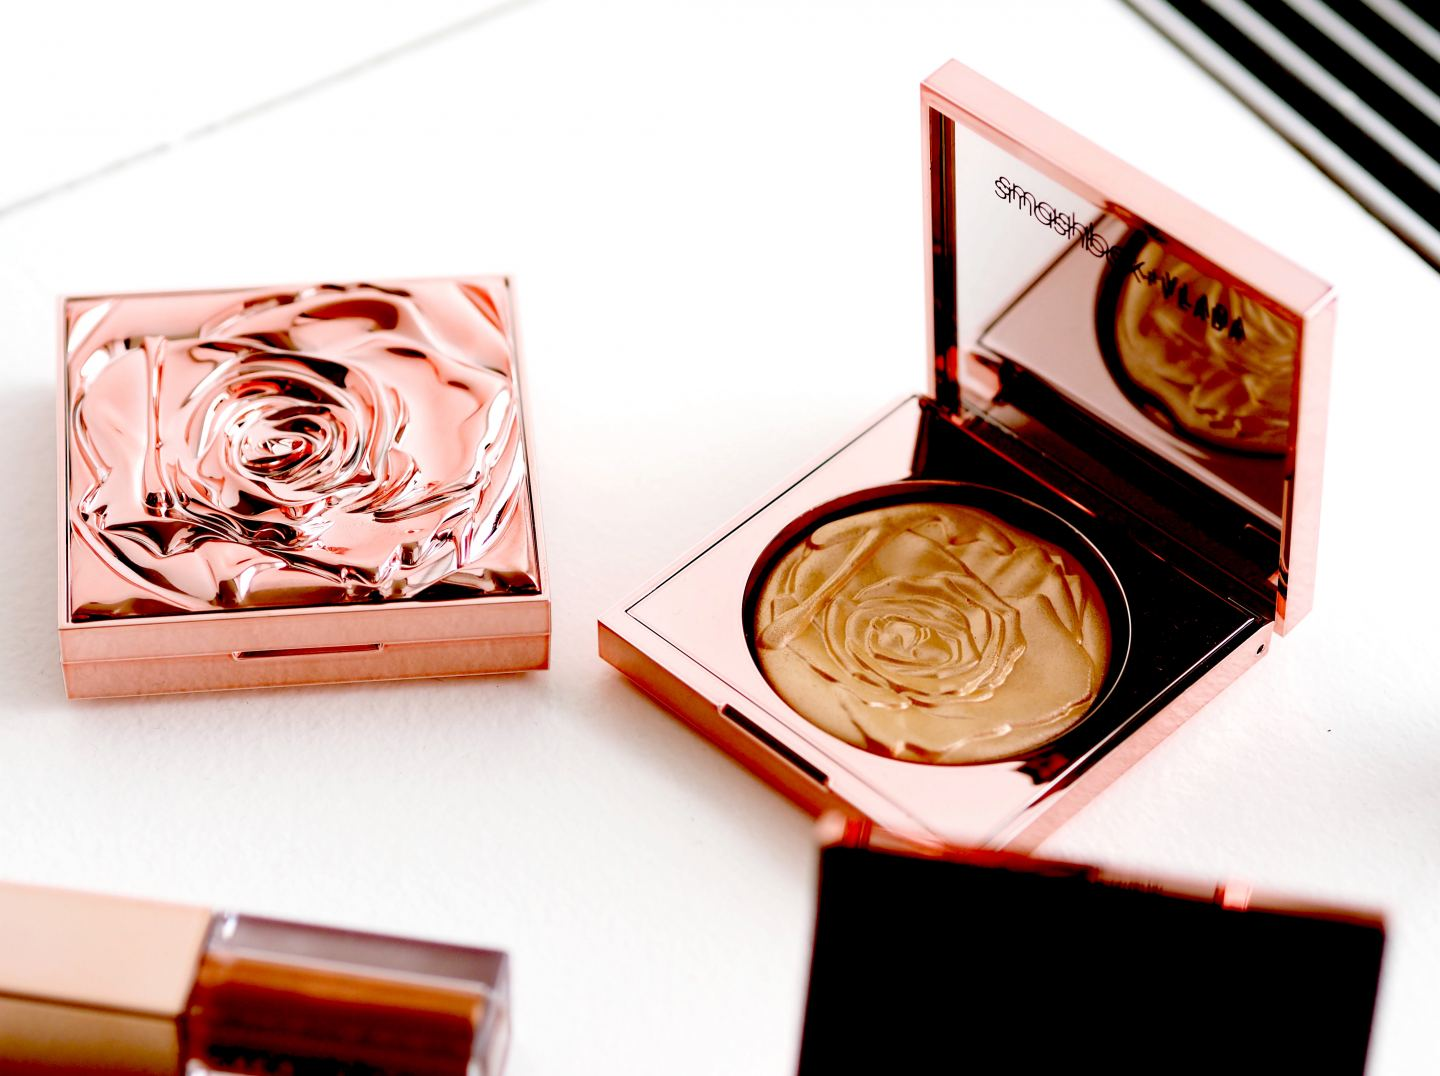 Beauty: Smashbox + Vlada 'Petal Metal' Collection